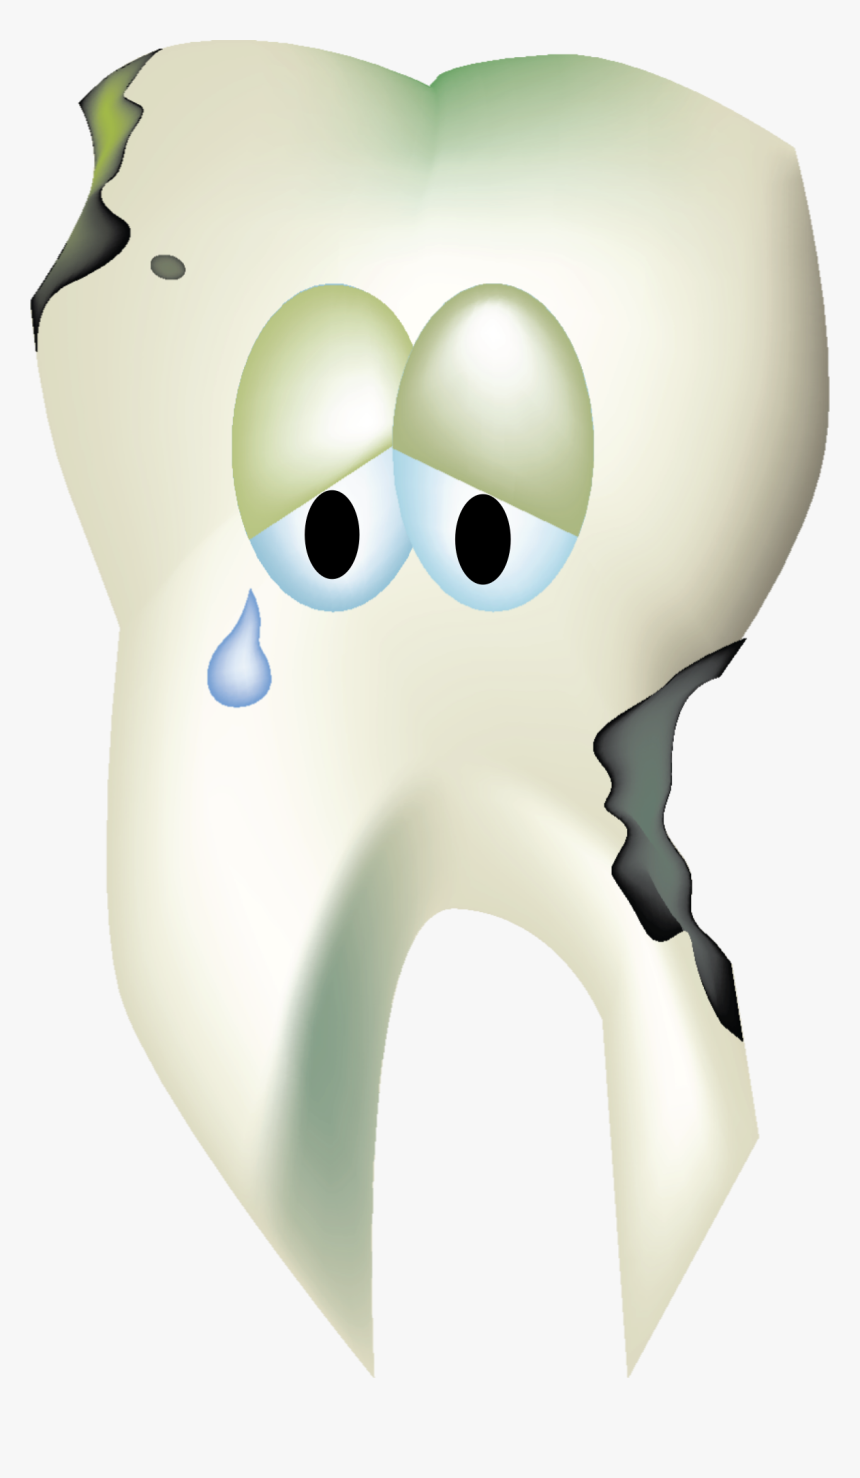 Clipart - Clipart Sad Tooth Png, Transparent Png, Free Download